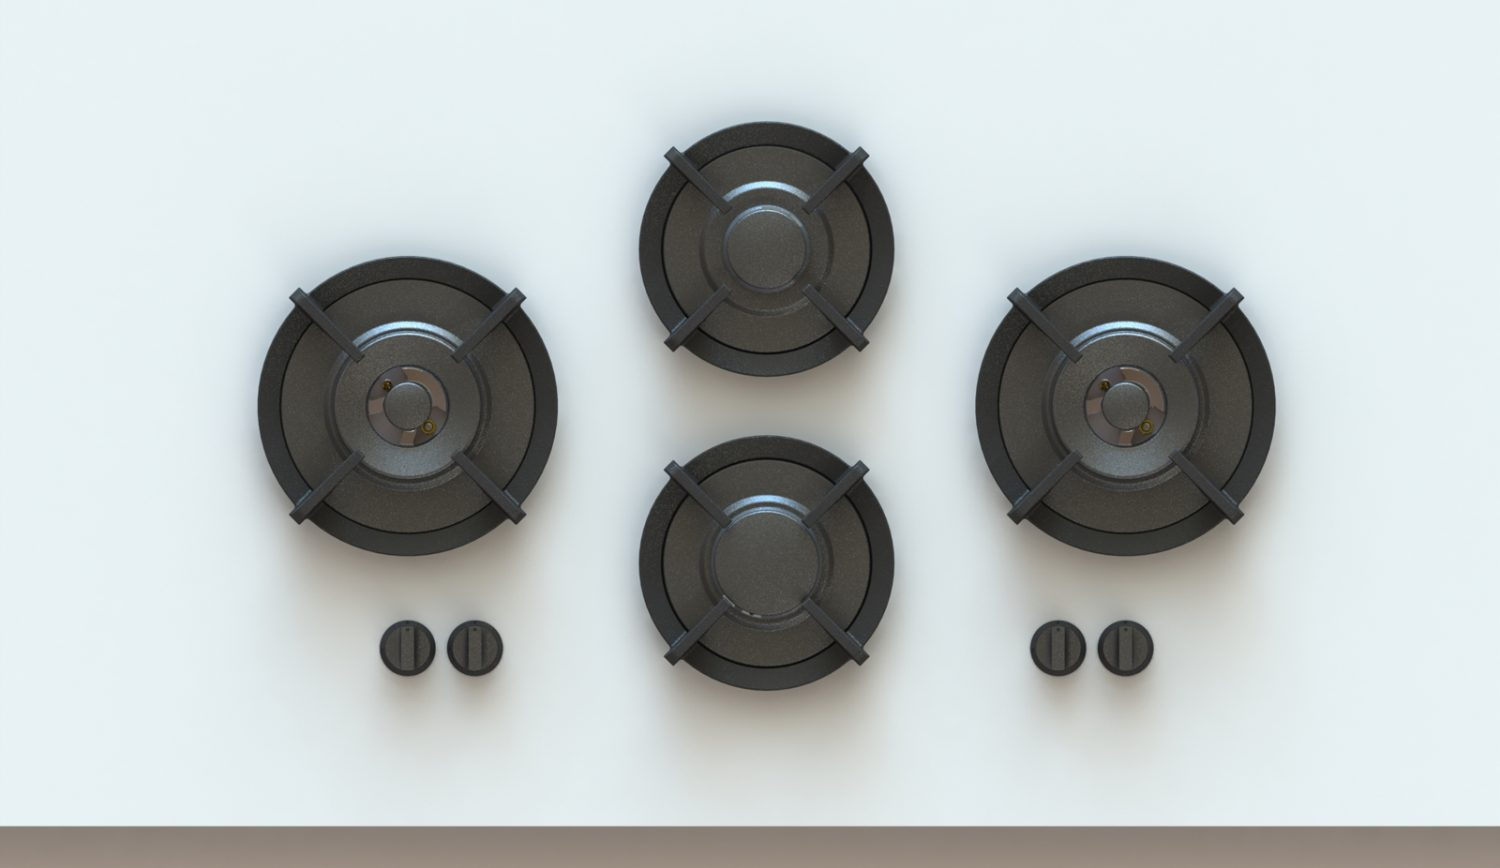 PITT-cooking-4-burners-Dempo-Above-1500x868